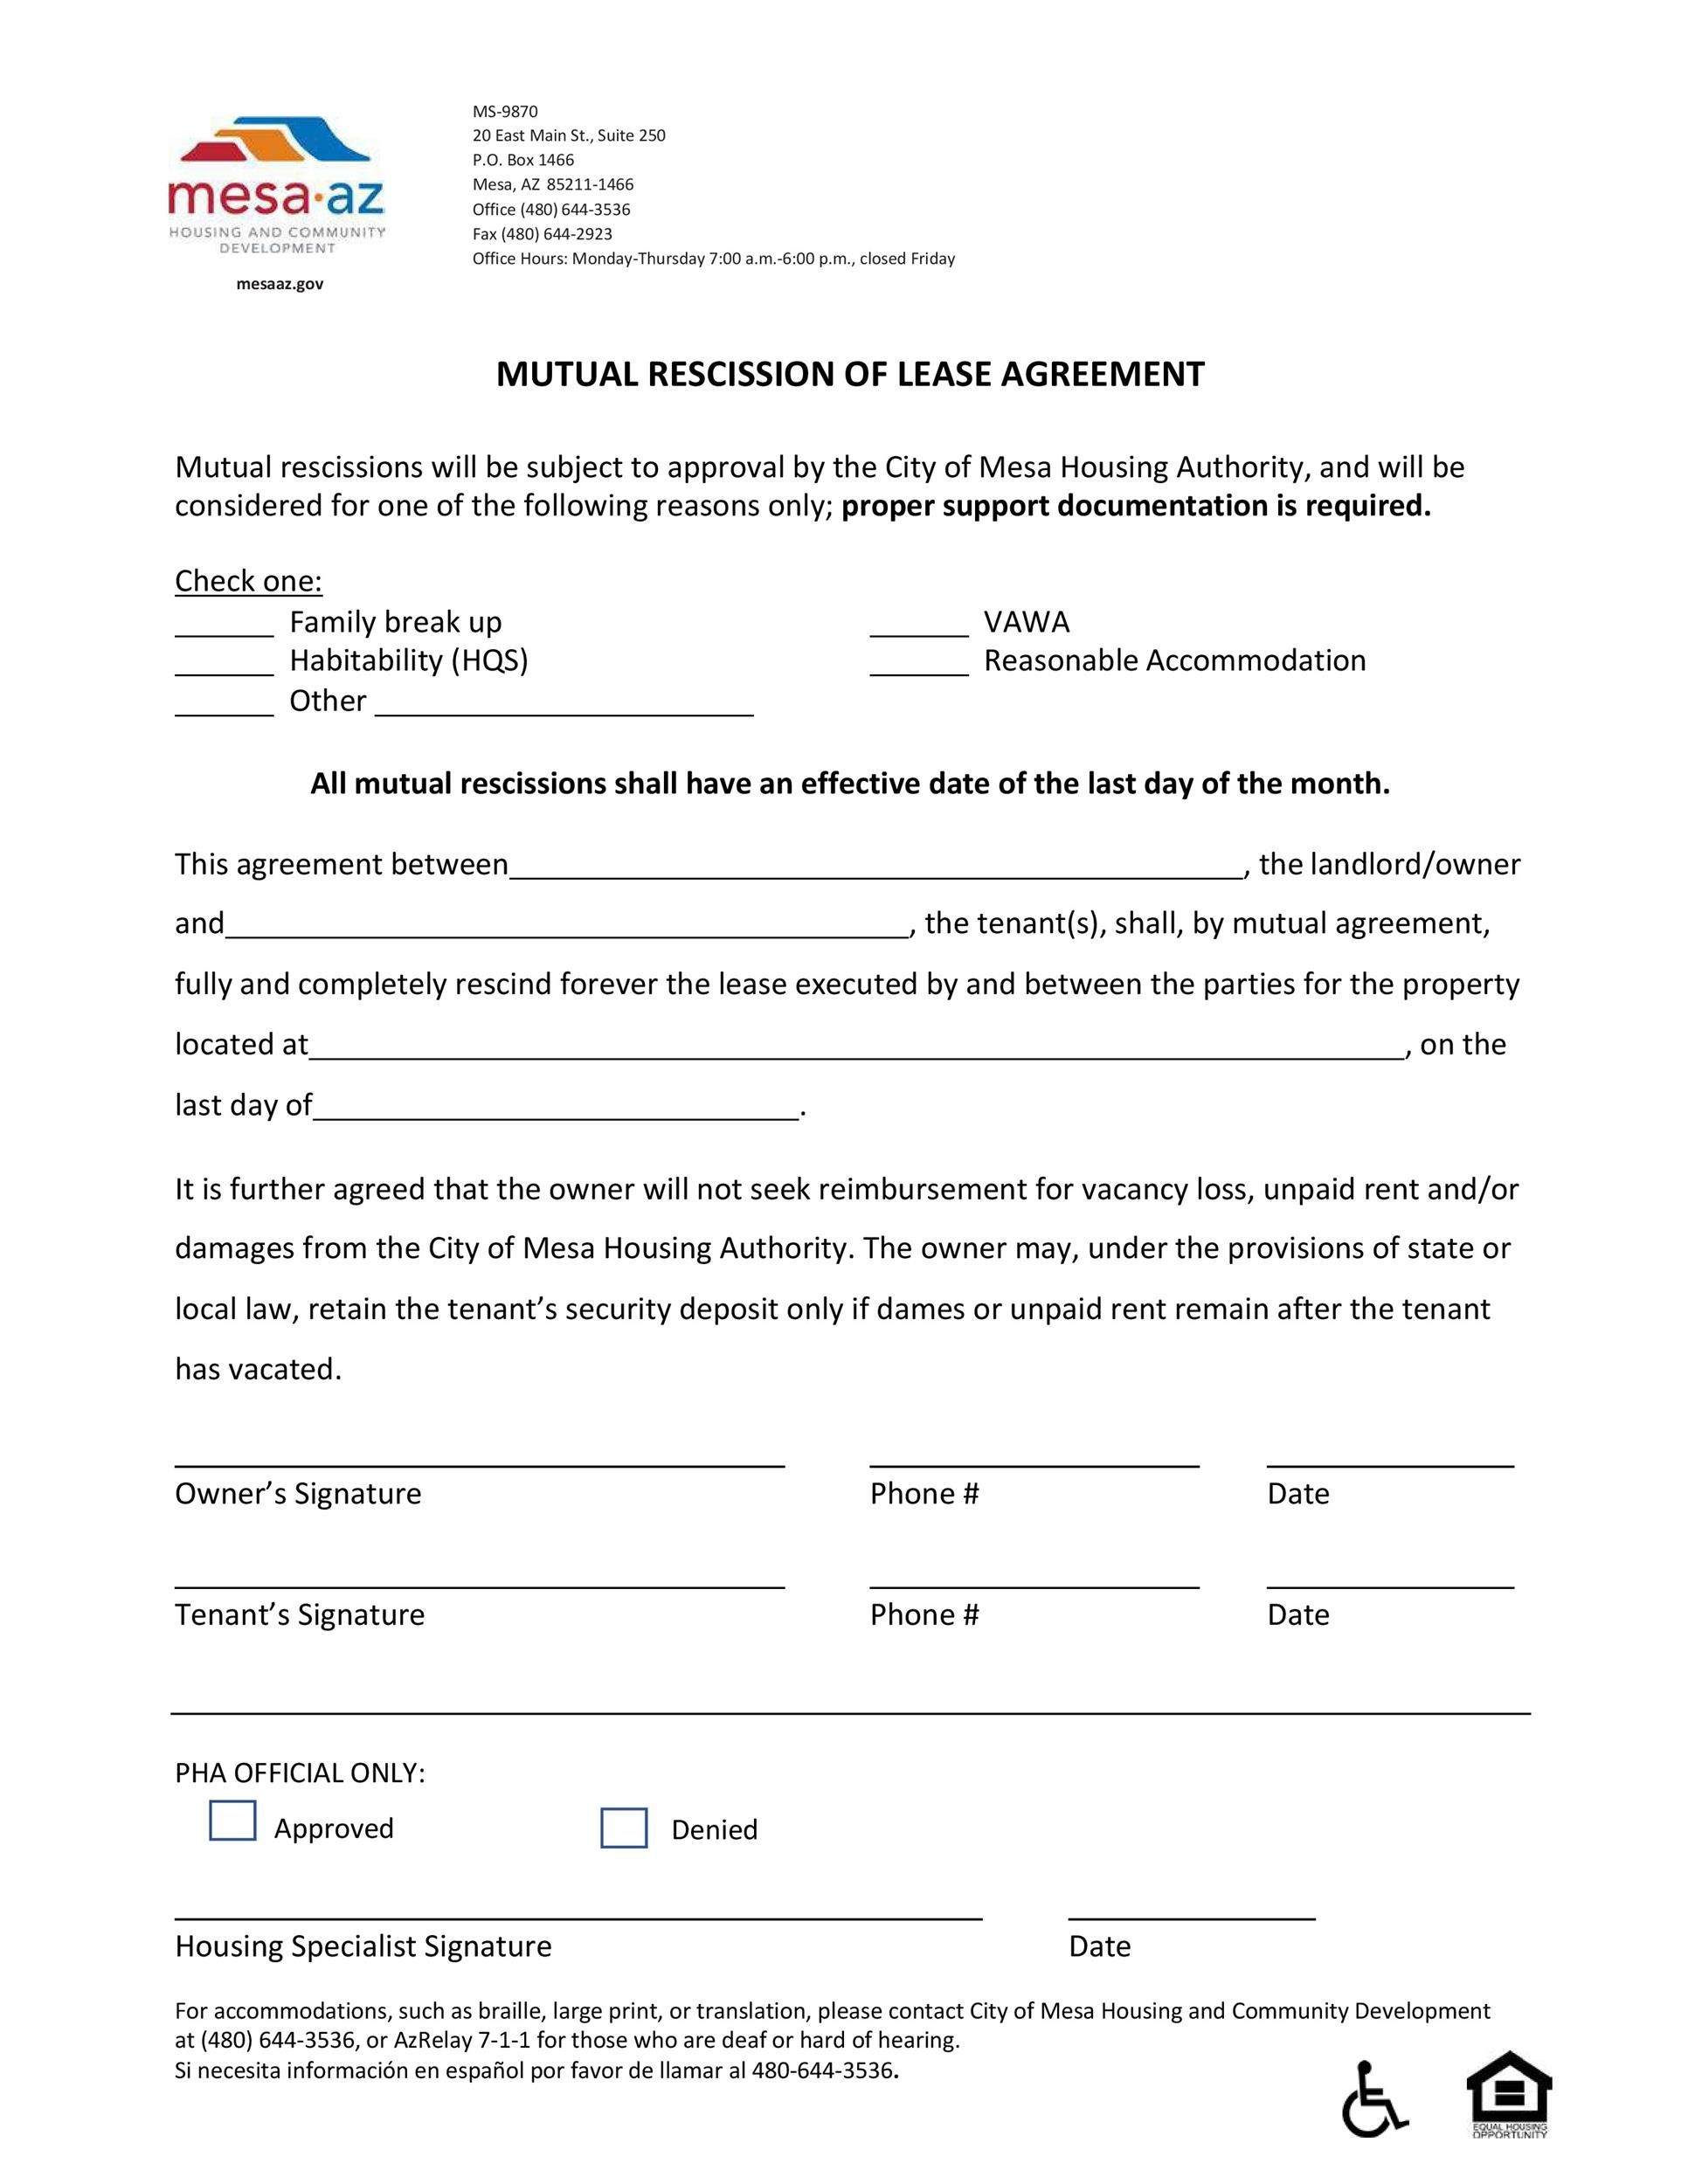 Free rescission agreement 27